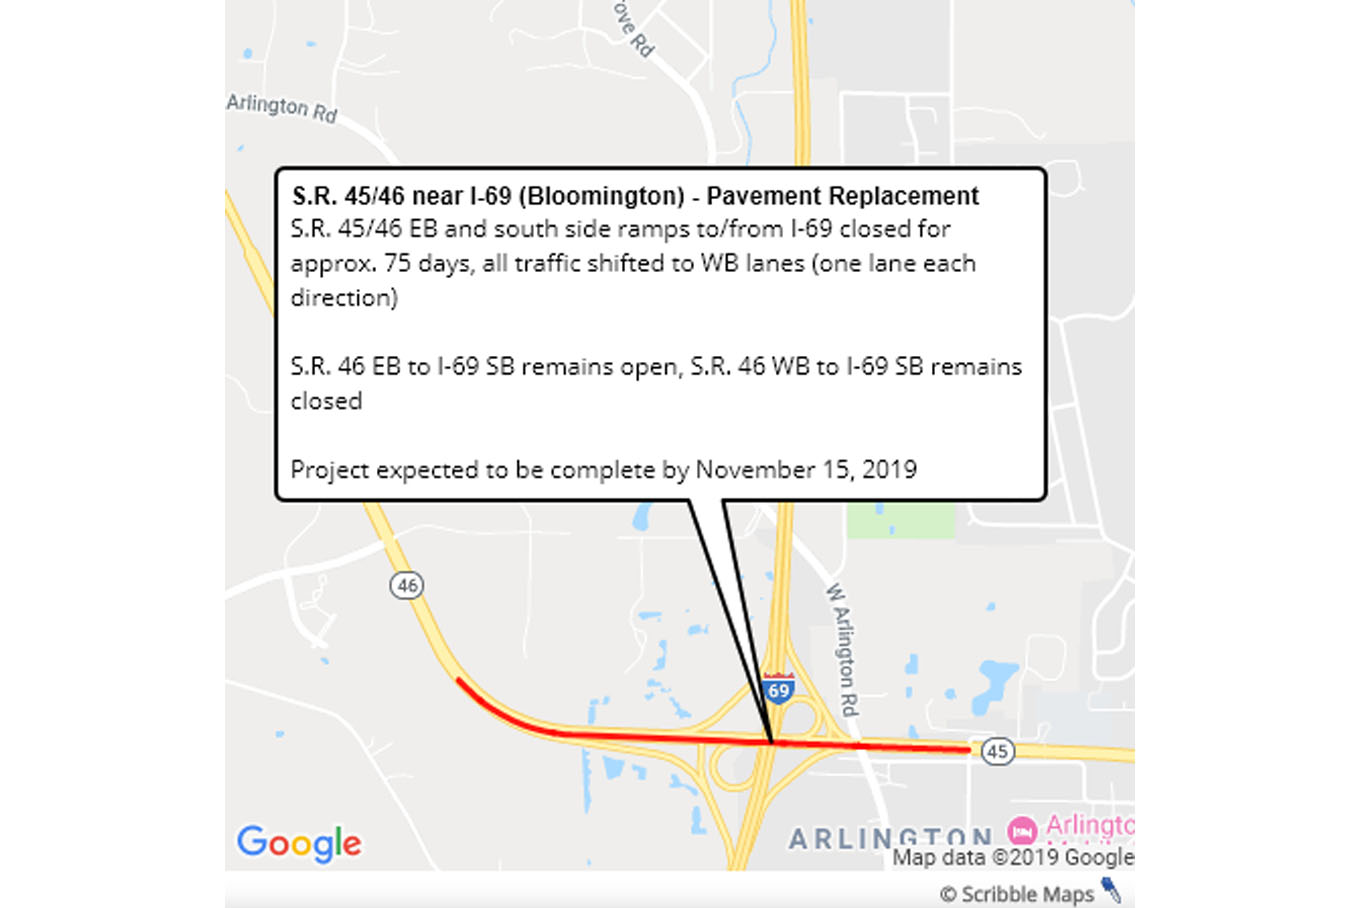 A map of SR 45/46 near I-69 where pavement replacement is scheduled starting Aug. 15 and ending Nov. 15, 2019.